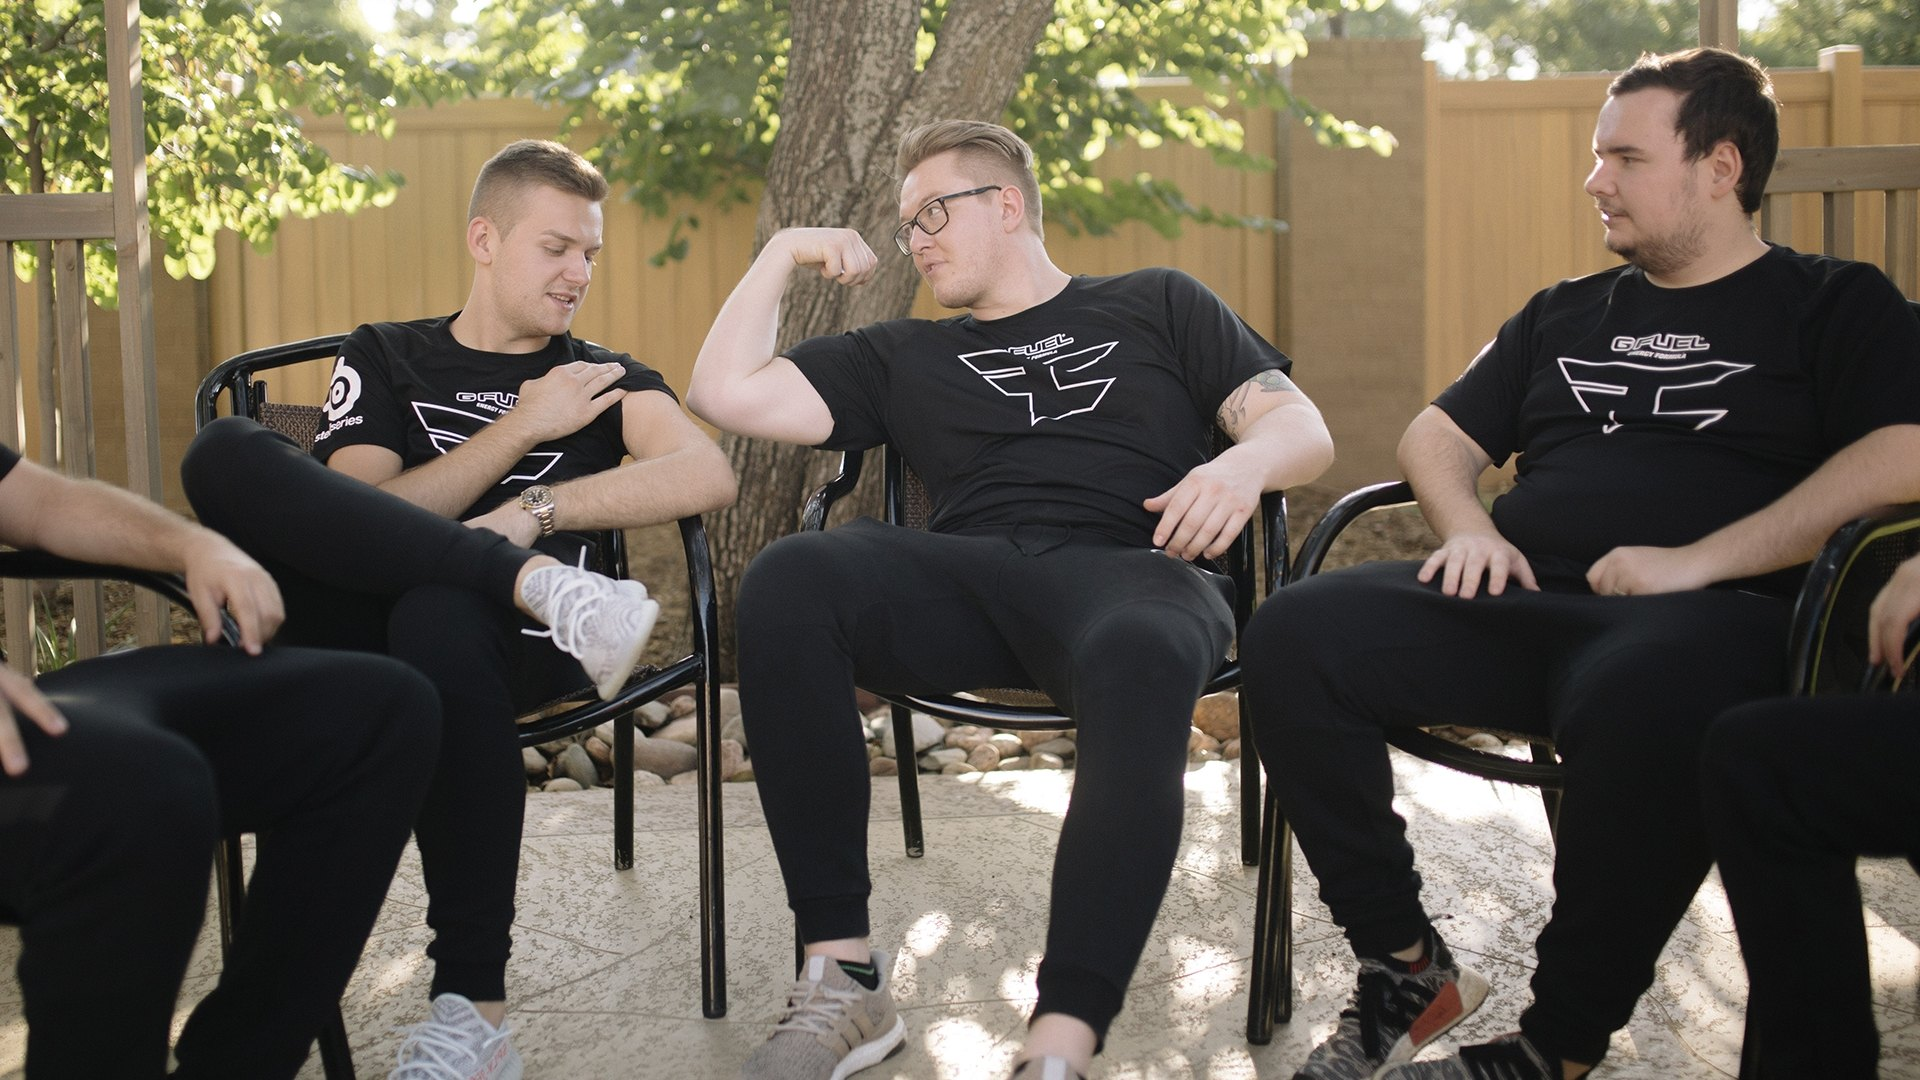 FaZe team members sitting in a circle relaxed in a yard